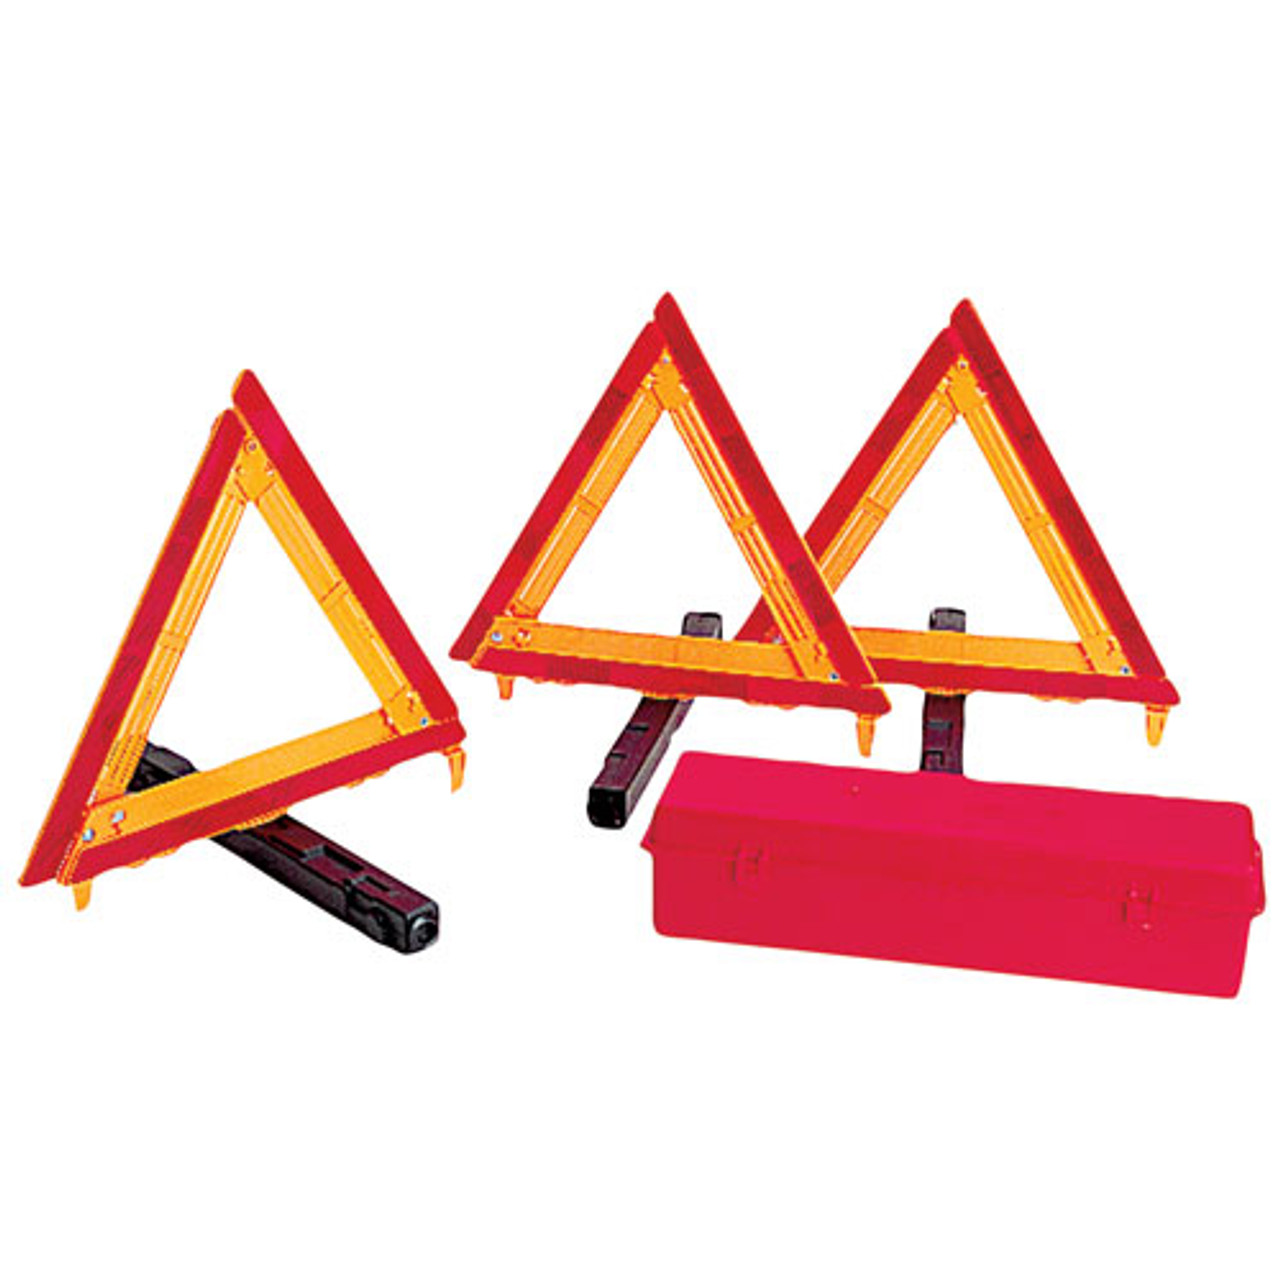 Warning Triangles w/ Case- Pack of Three- Weighted Bases- Deflecto 73-0711-41